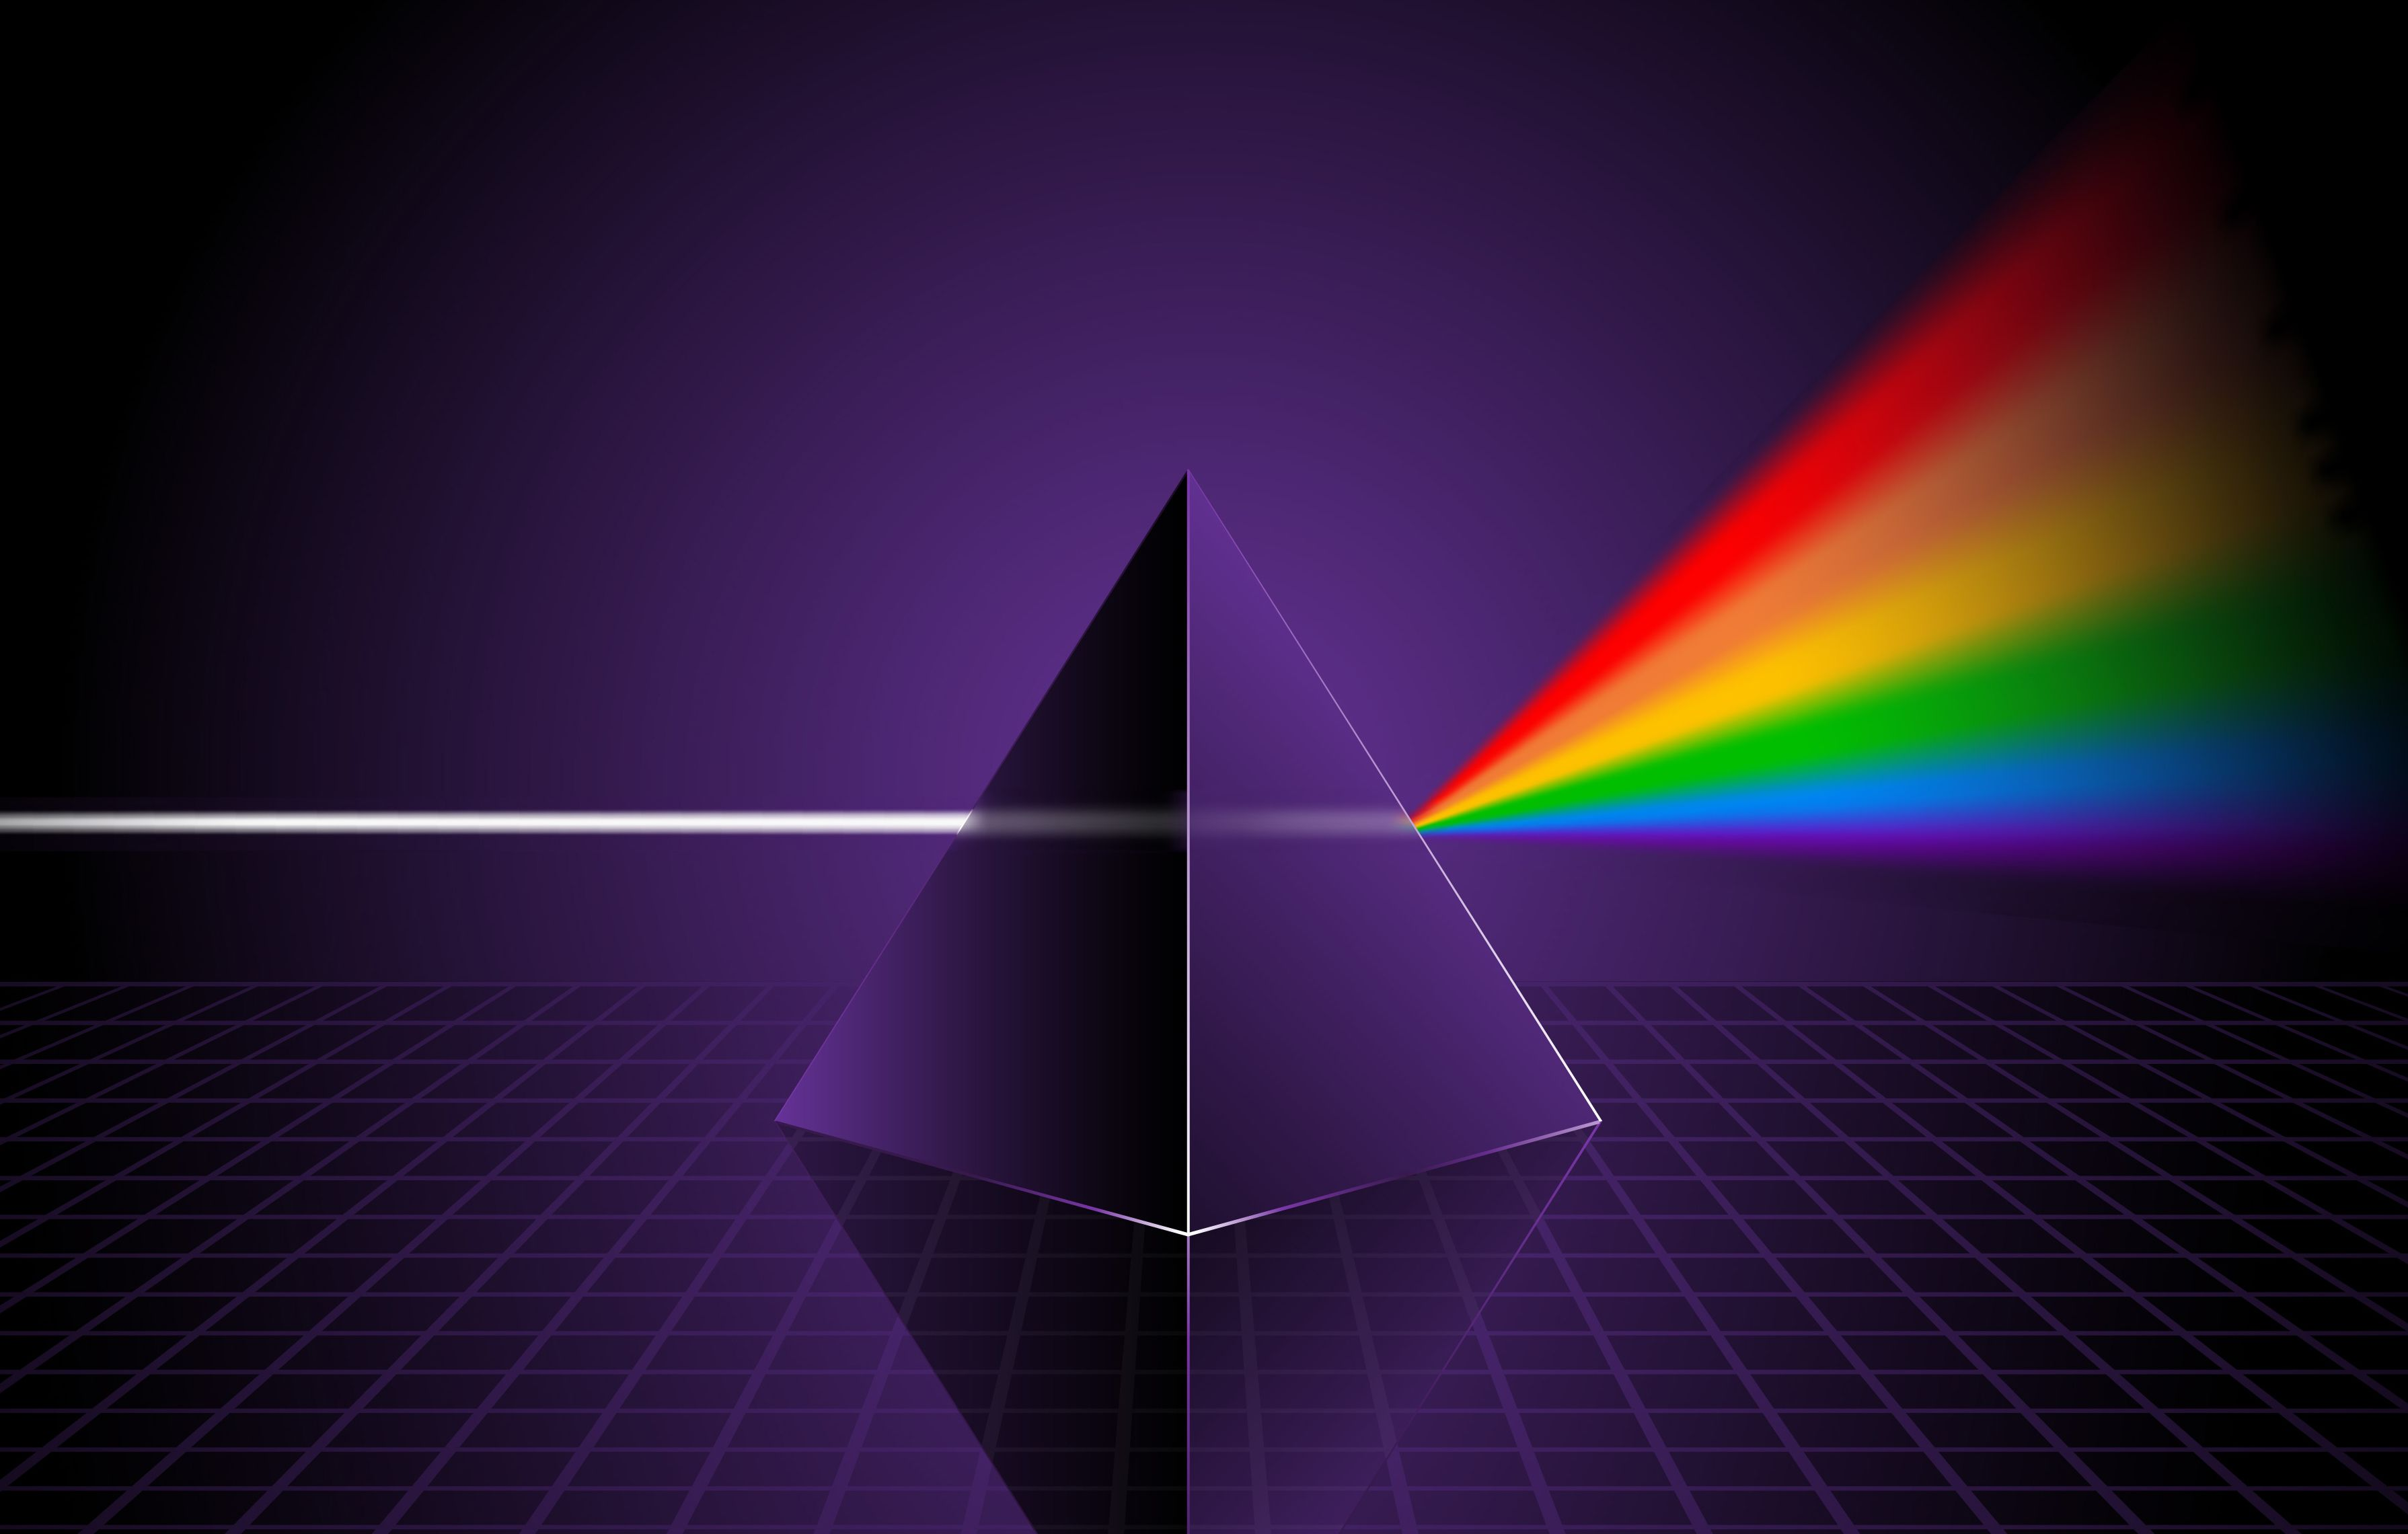 We Can Use The Prism Idea To Display The Various Layers Of Sis There Is An Idea That One